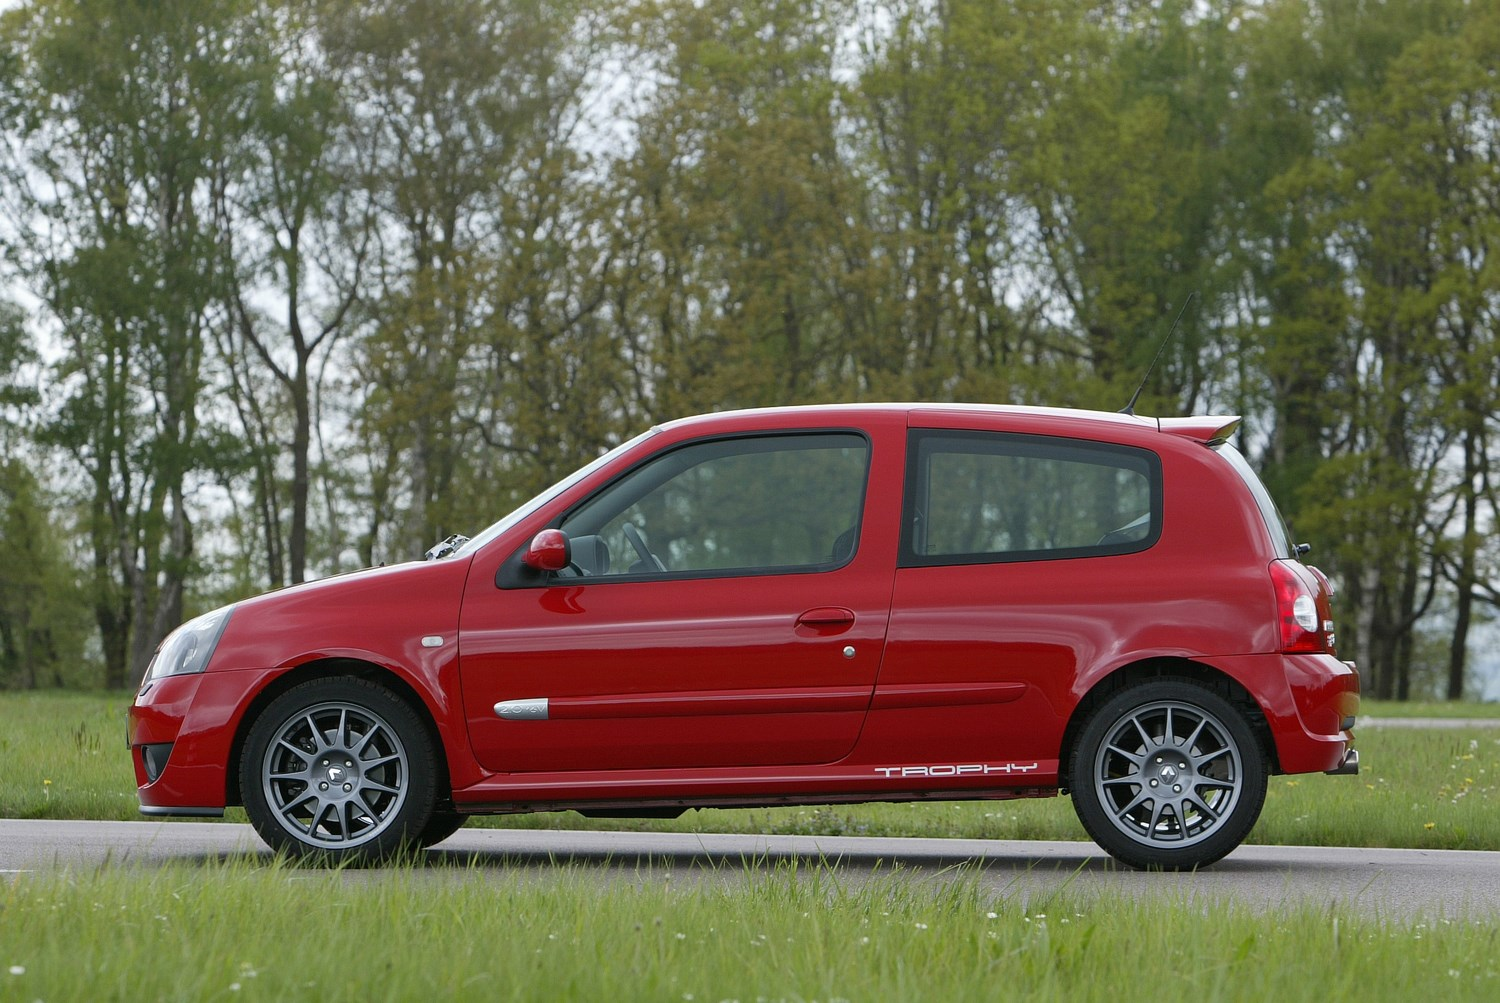 Used Renault Clio Renaultsport 2001 2005 Review Parkers